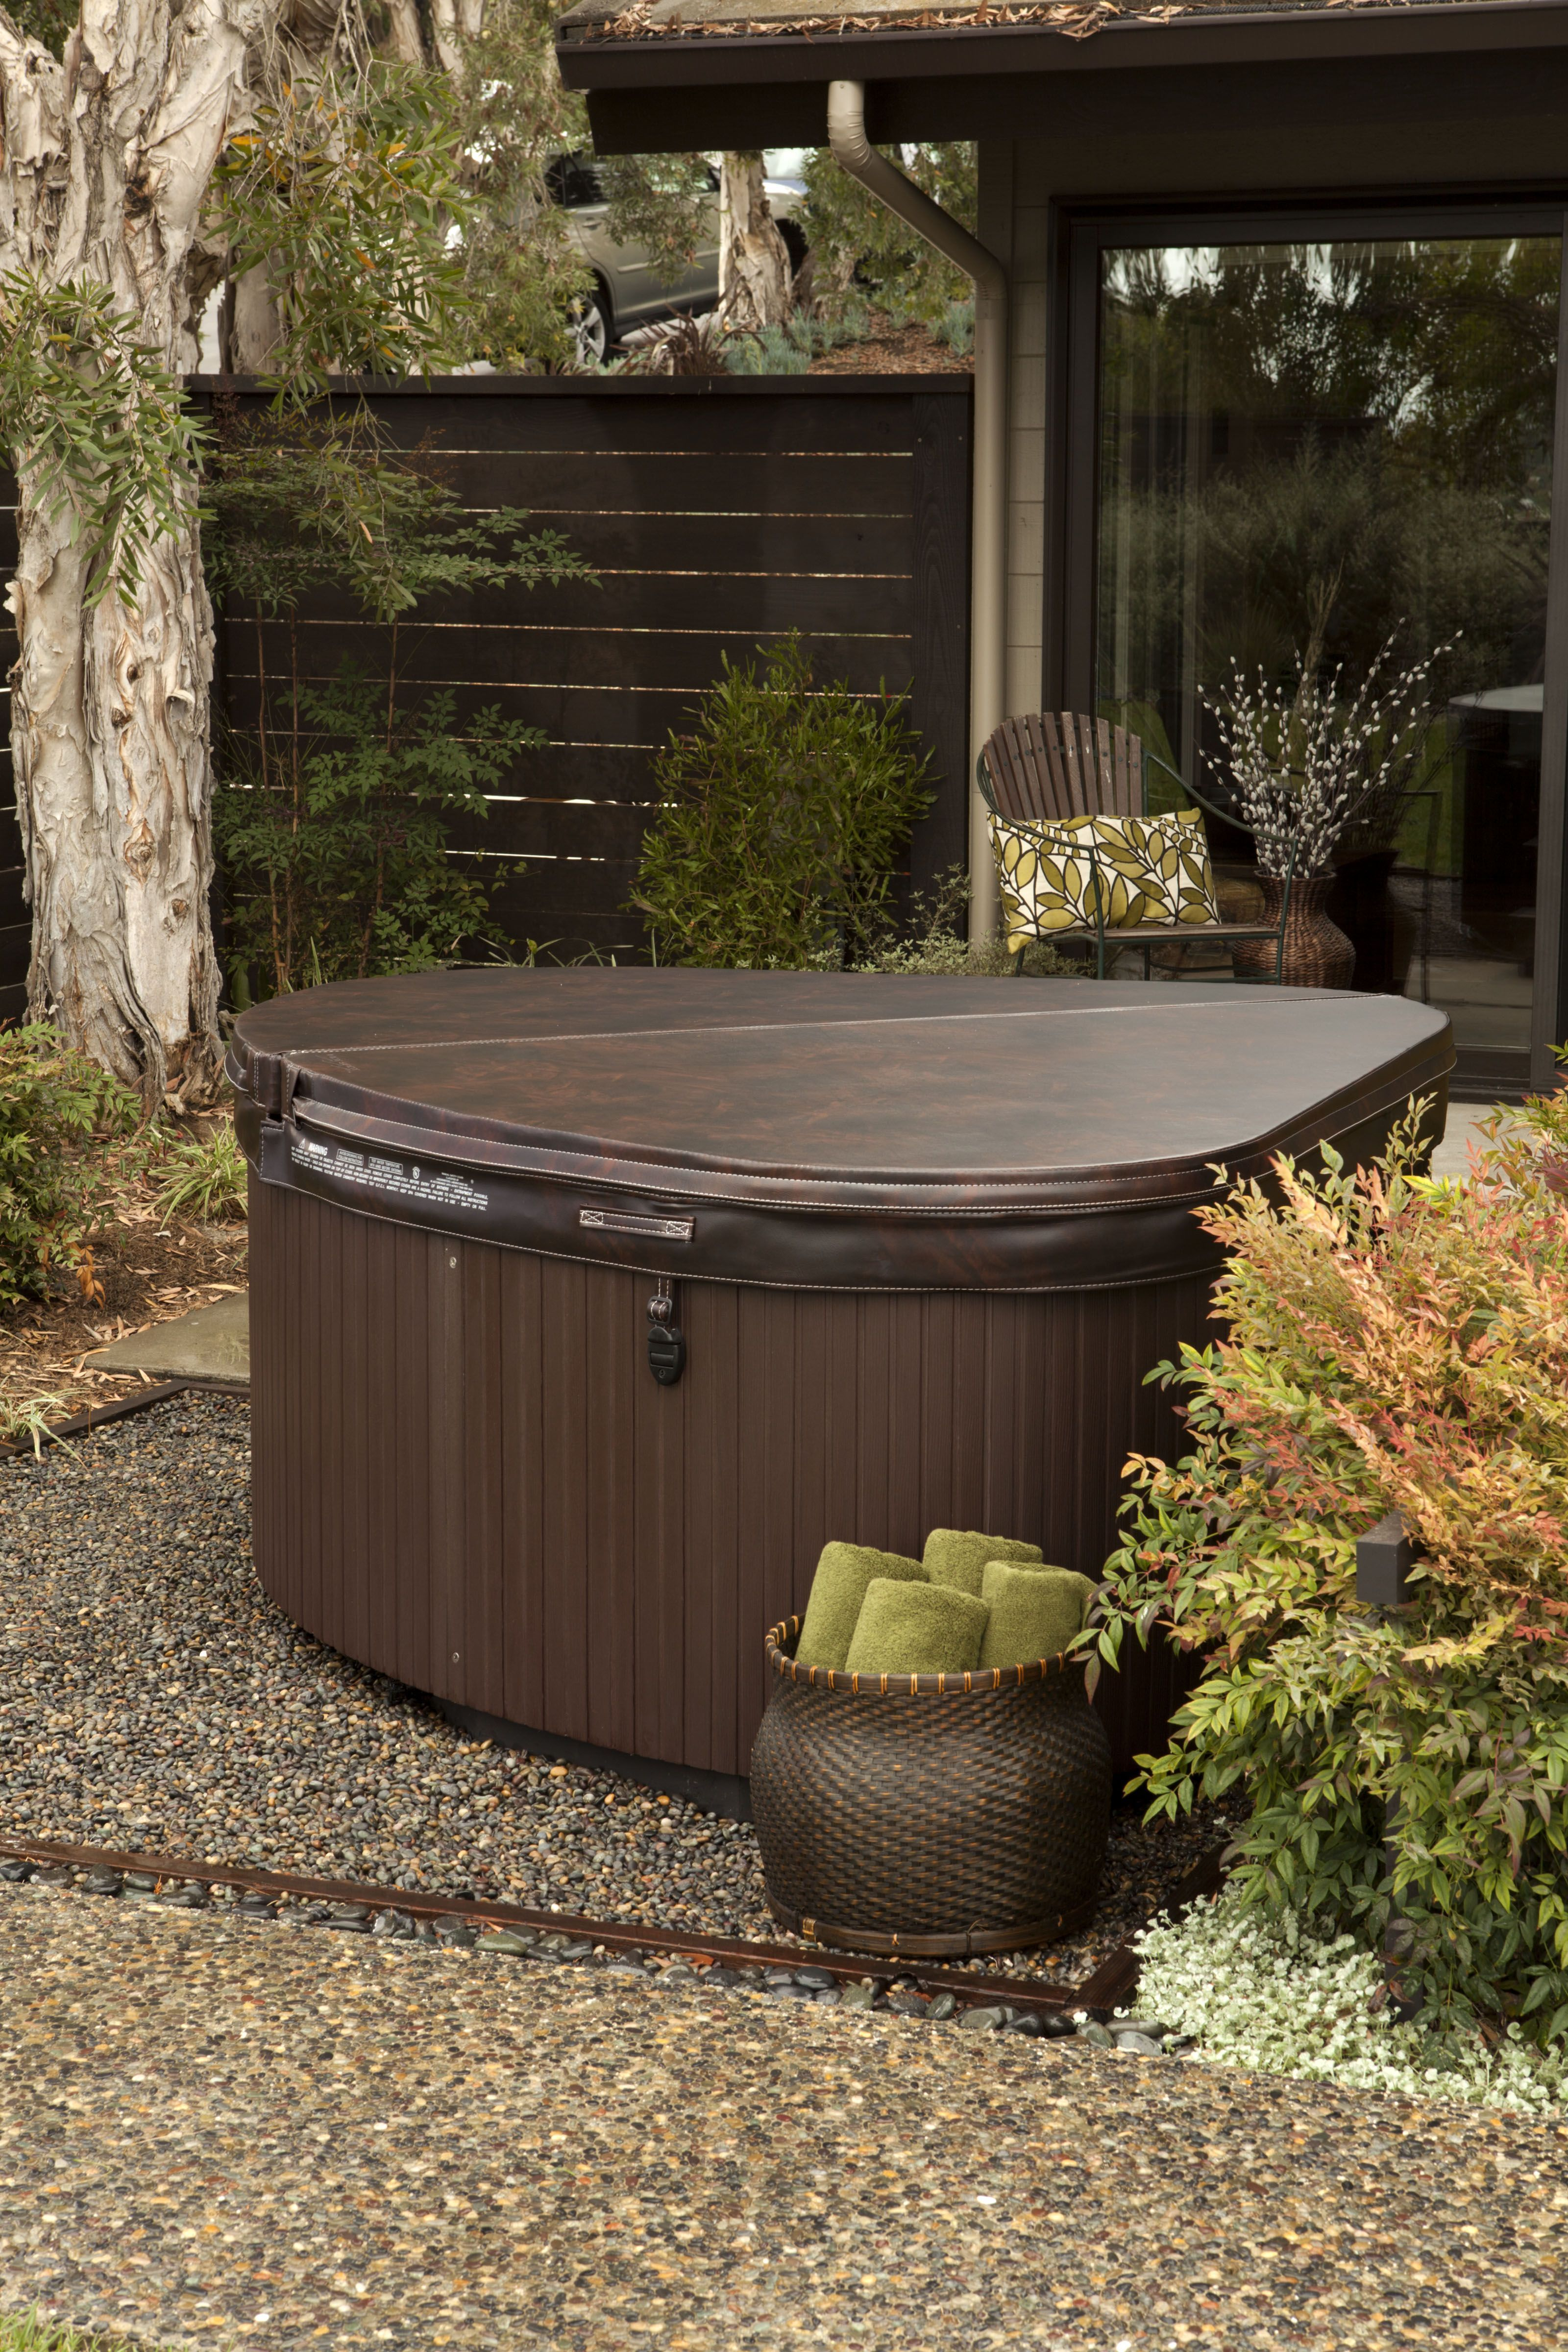 Change The Way You Relax With The Help Of An Outdoor Jacuzzi Decor Around The World Hot Tub Garden Hot Tub Backyard Backyard Design